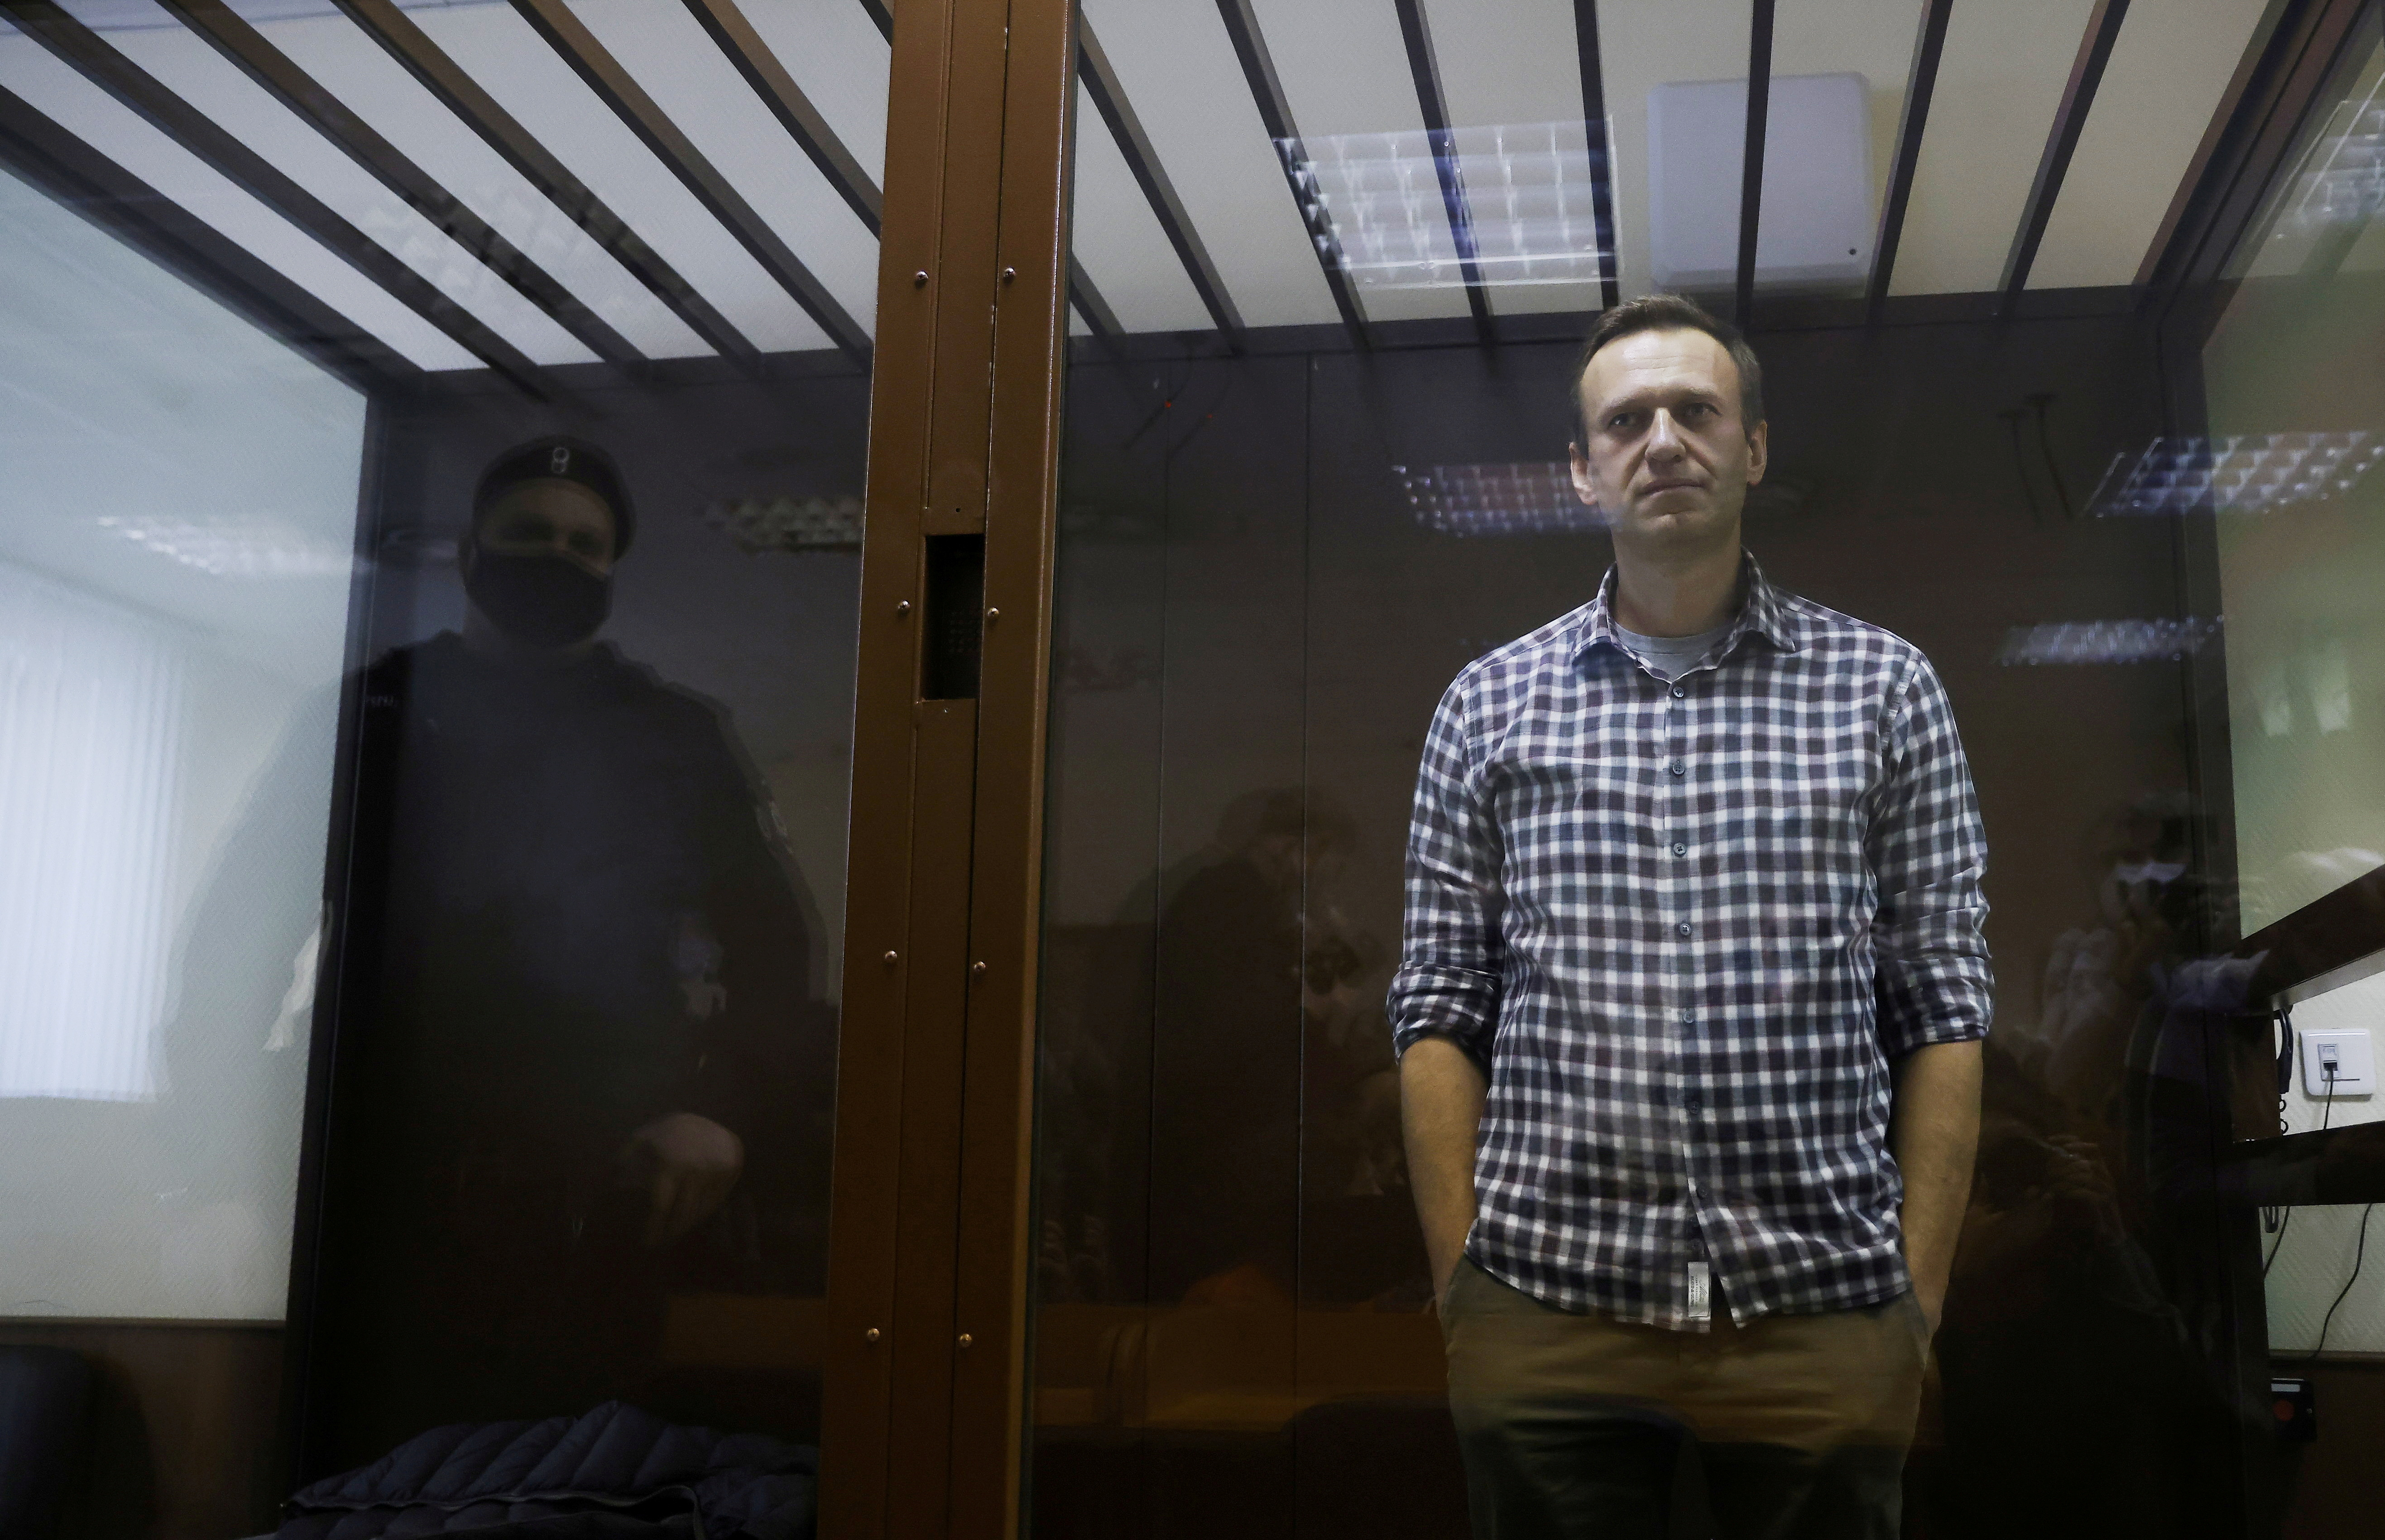 Russian opposition leader Alexei Navalny attends a hearing to consider an appeal against an earlier court decision to change his suspended sentence to a real prison term, in Moscow, Russia February 20, 2021. REUTERS/Maxim Shemetov/File Photo